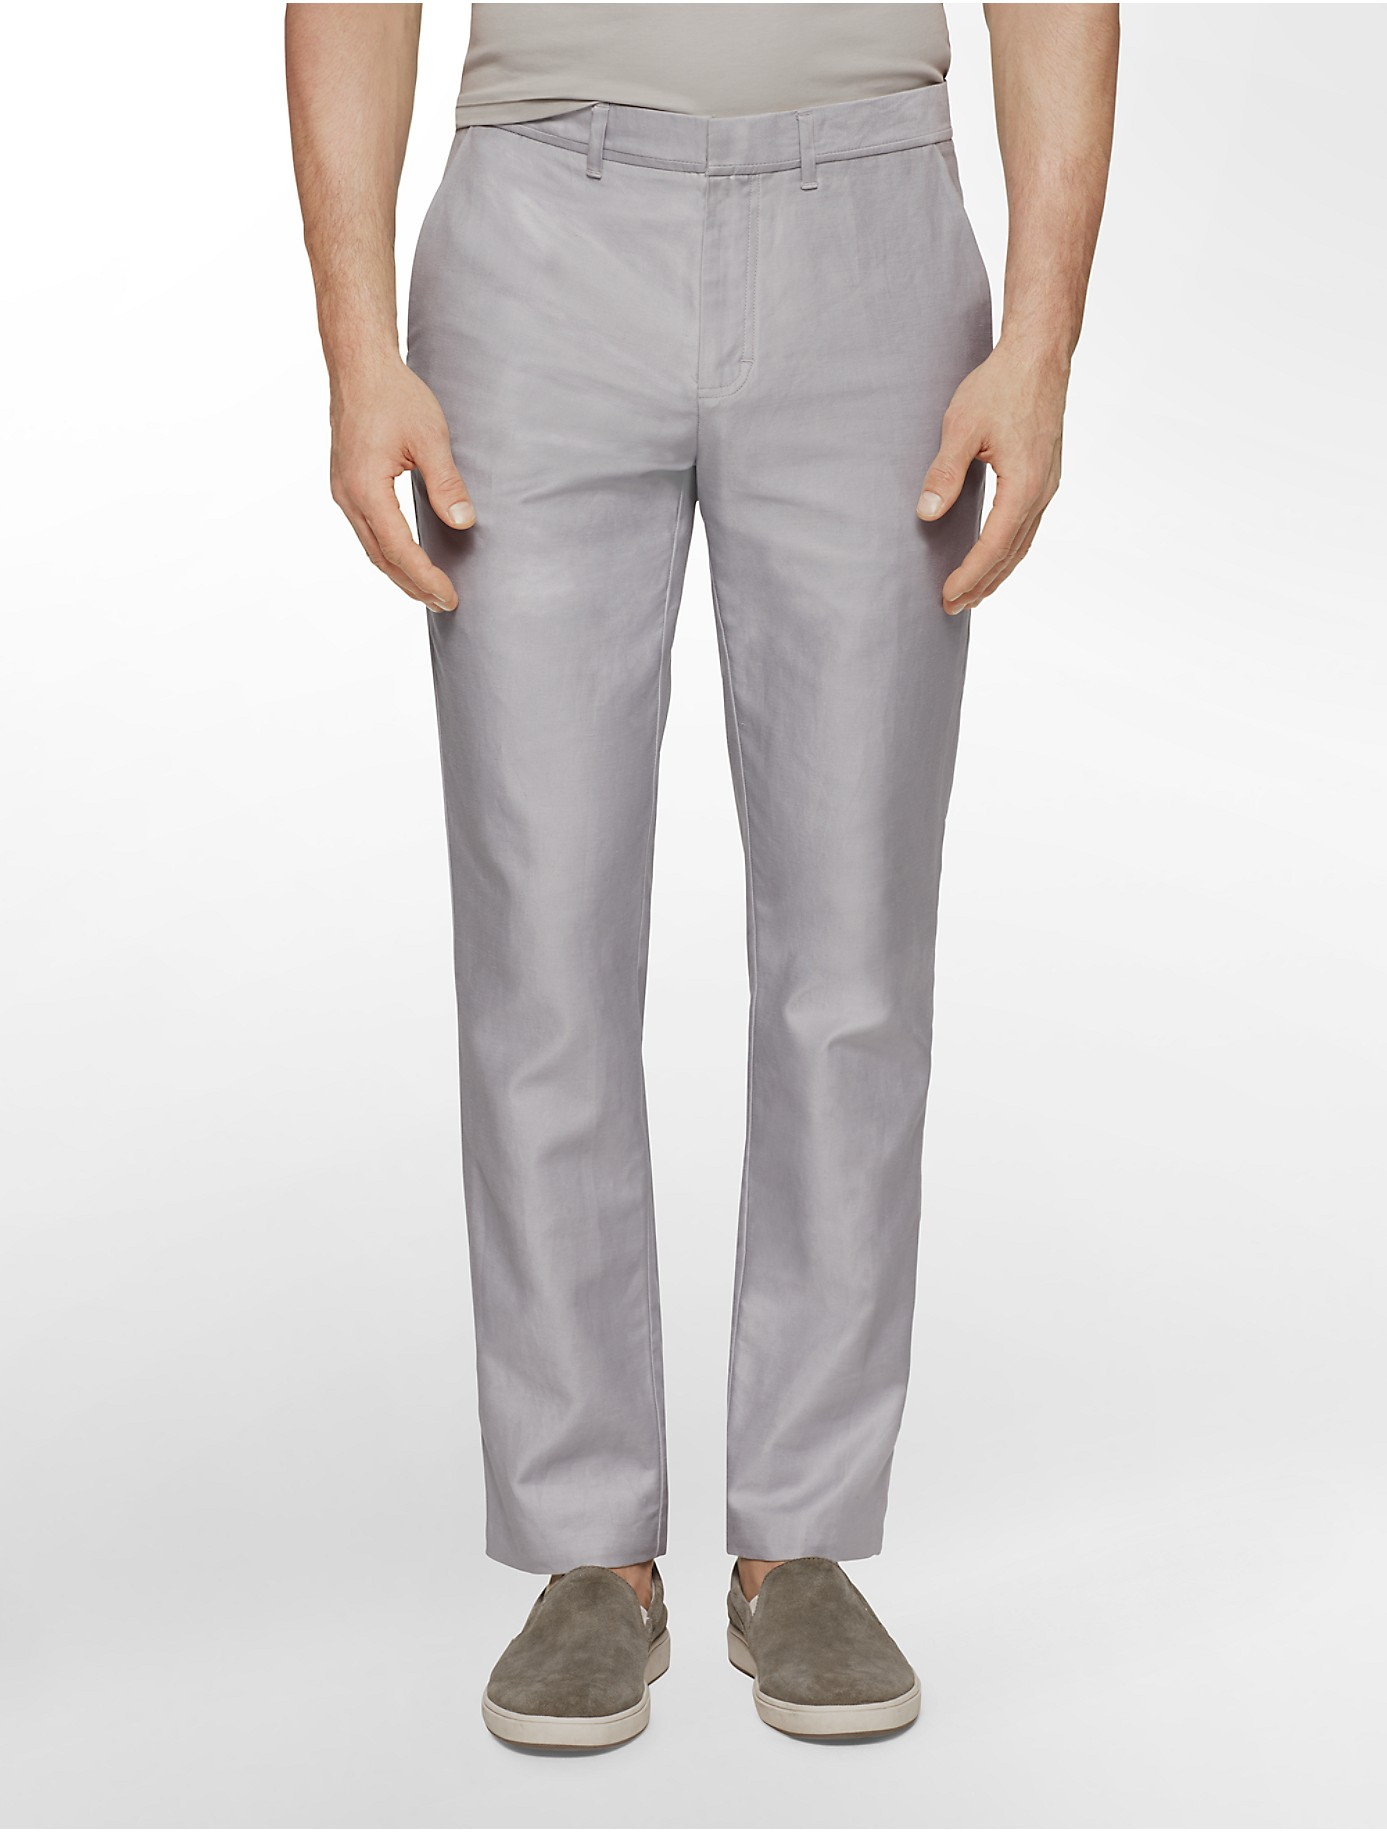 Calvin klein White Label Slim Fit Cotton Linen Pants in Gray for ...